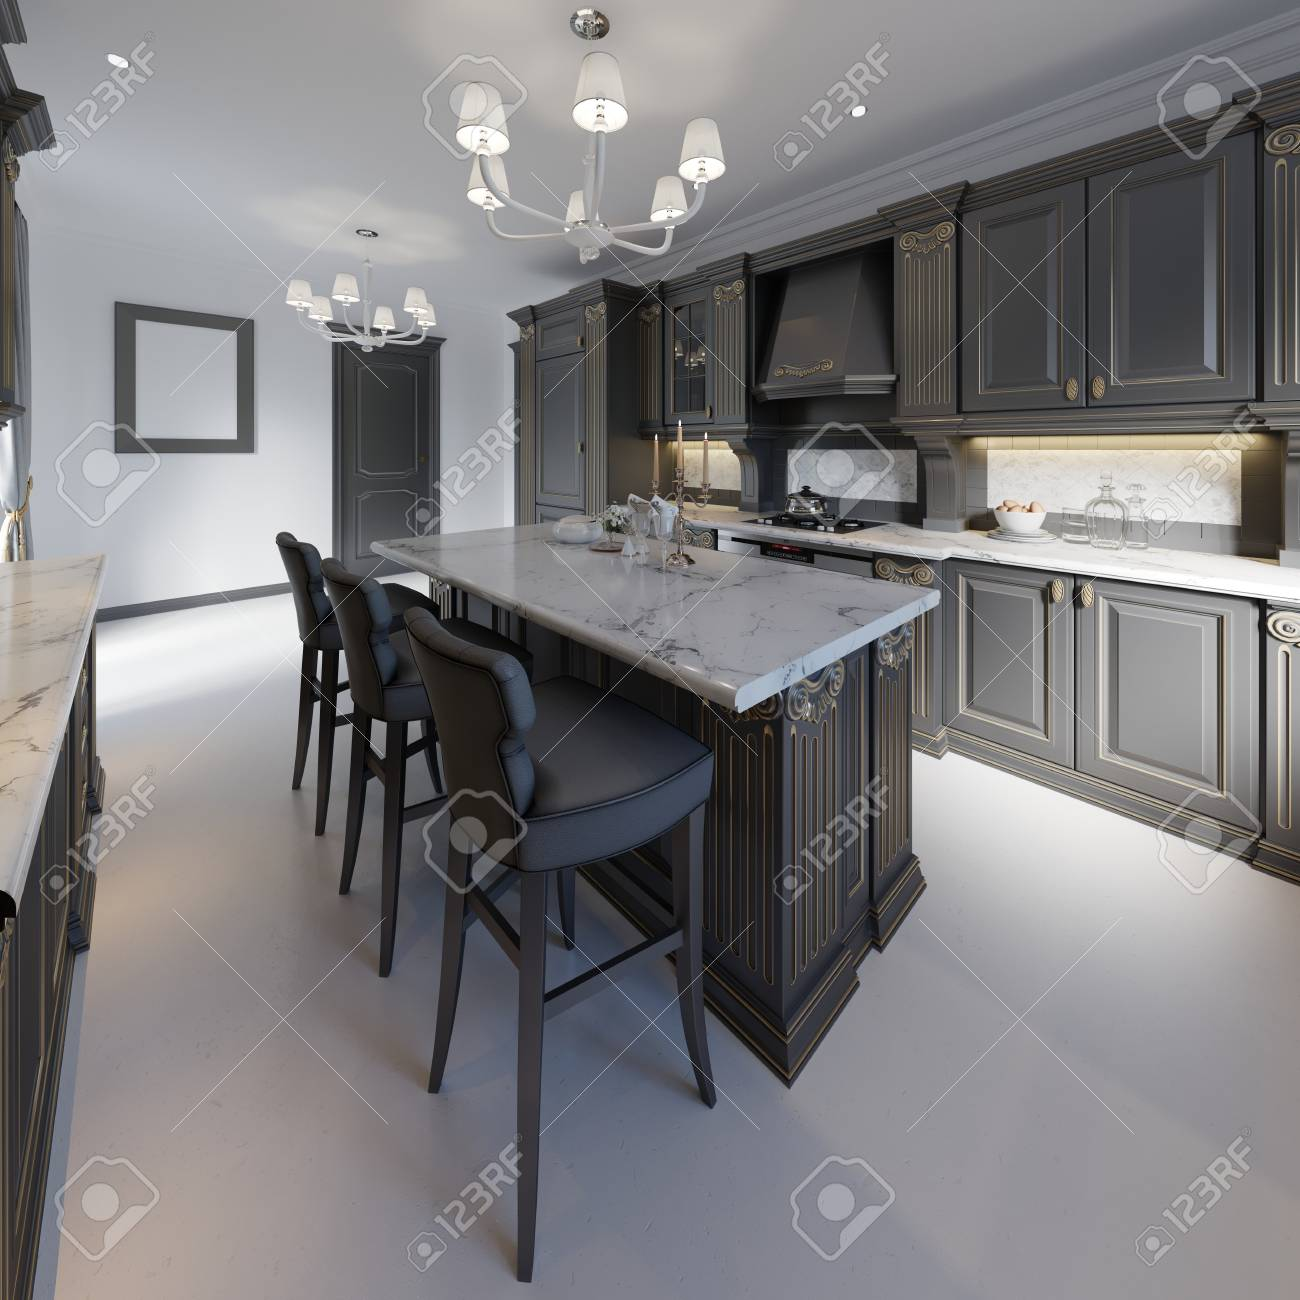 Kitchen island details and bar chairs. 3d rendering